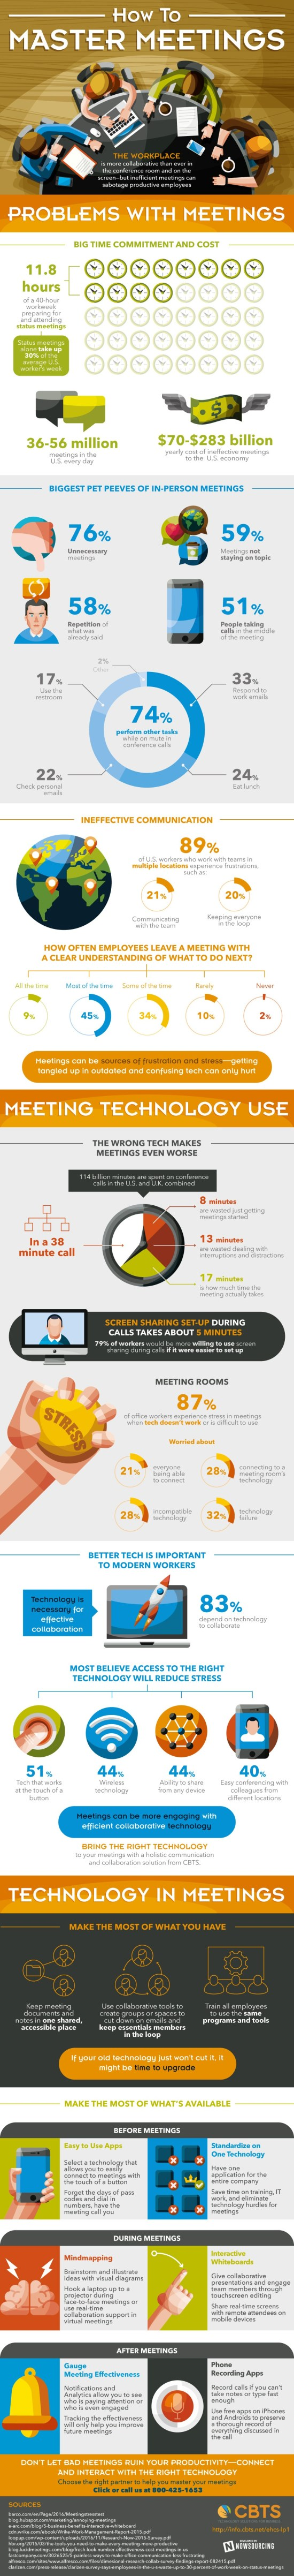 Are You A Master Of Meetings? [Infographic] 1